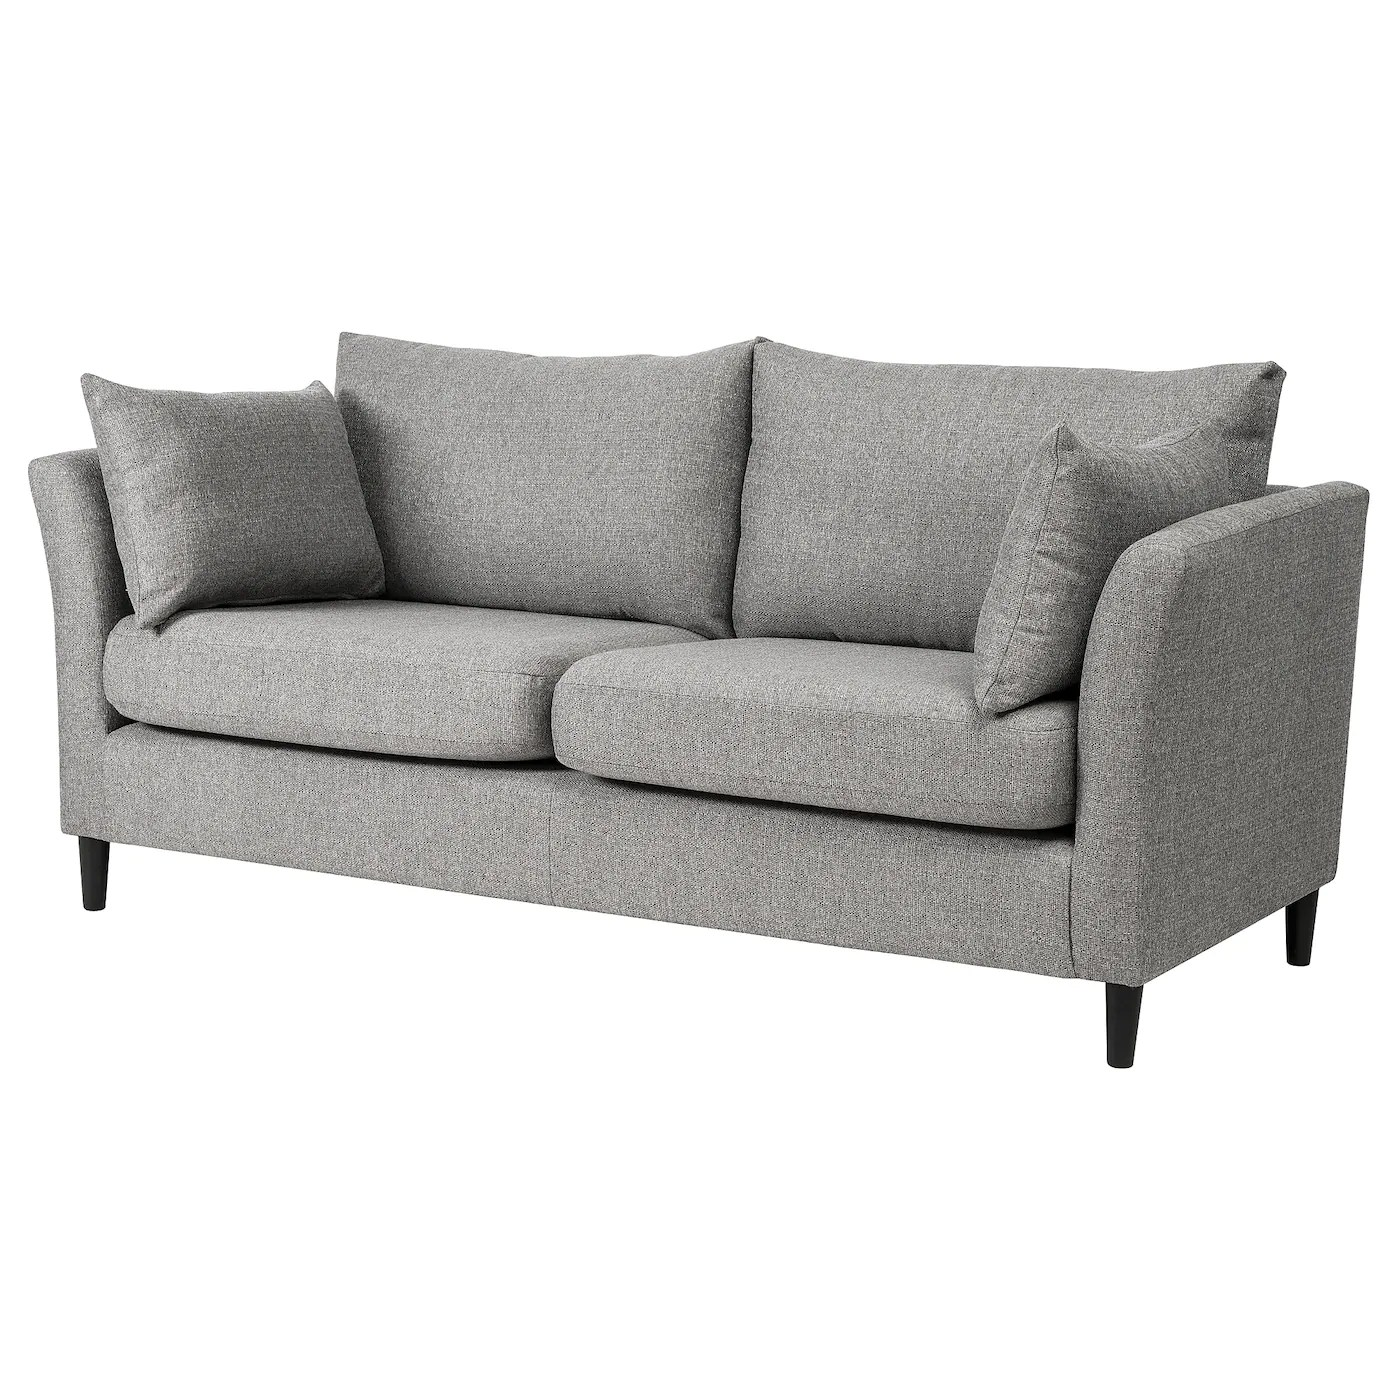 Sofa Uk Ikea Bankeryd 3 Seat Sofa Grey